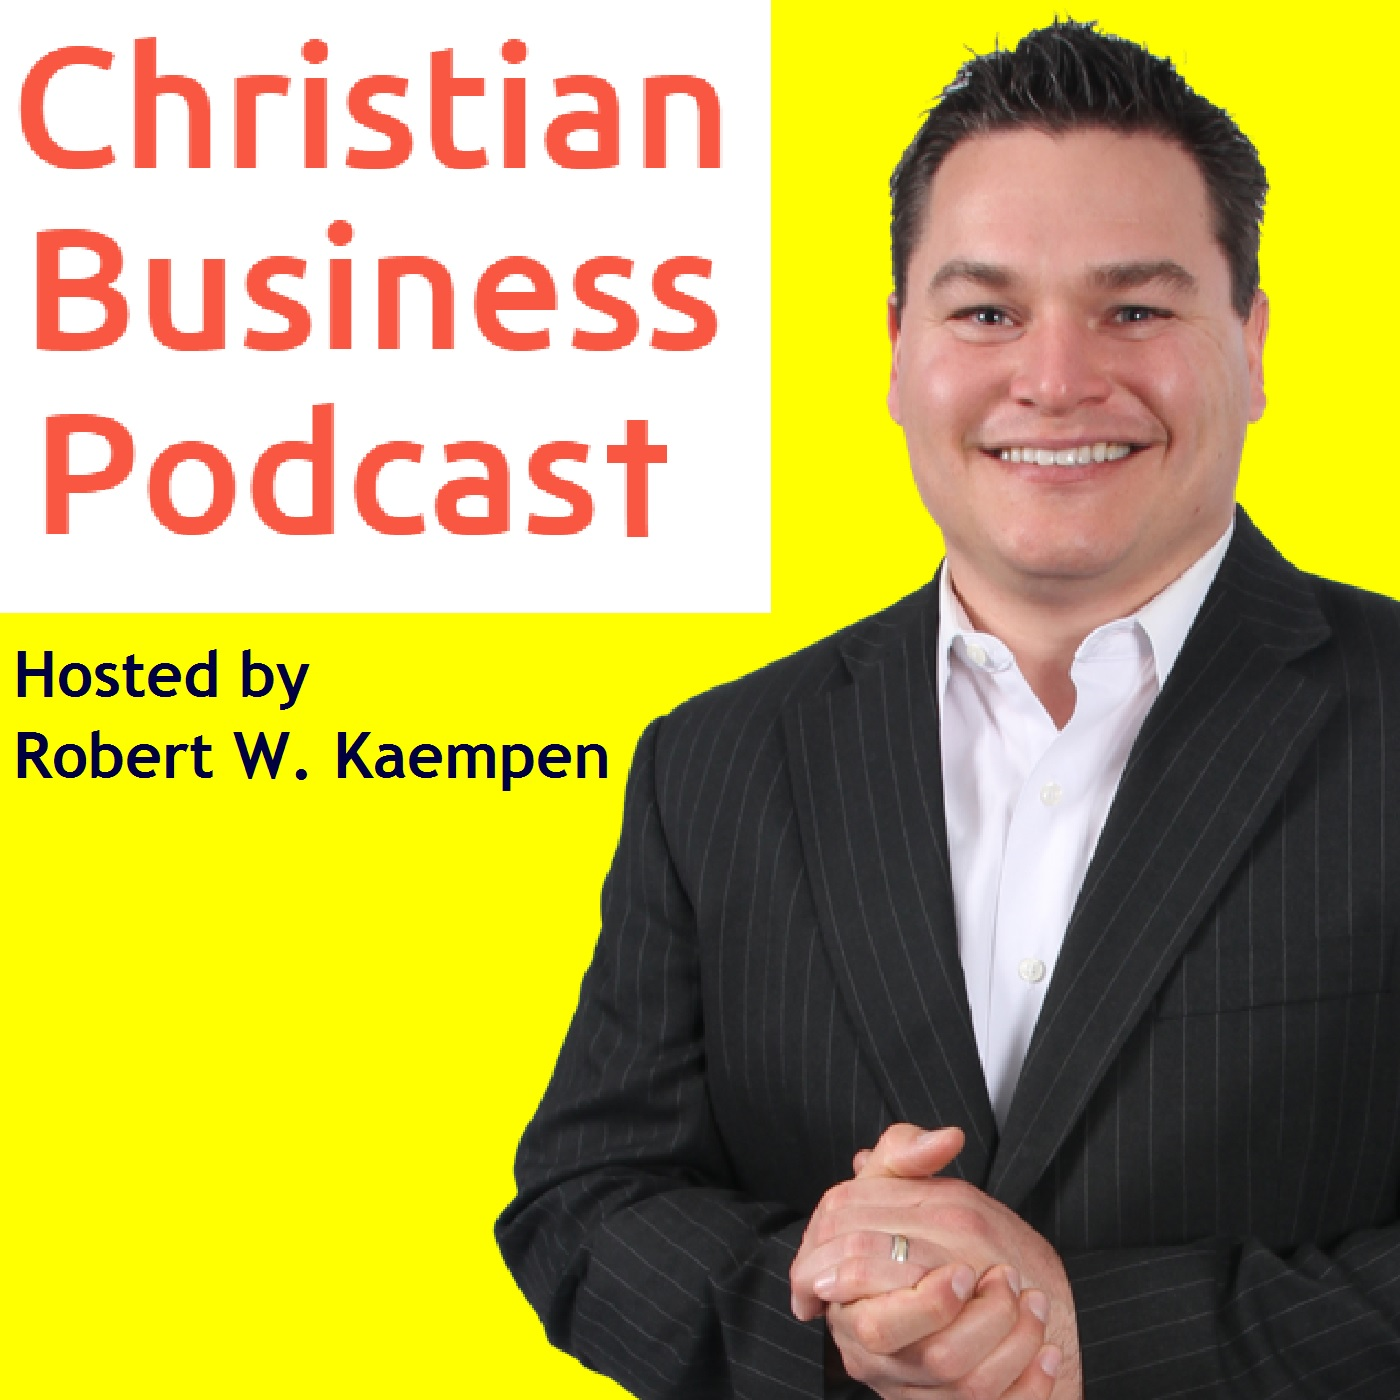 Christian Business Podcast with Robert W. Kaempen